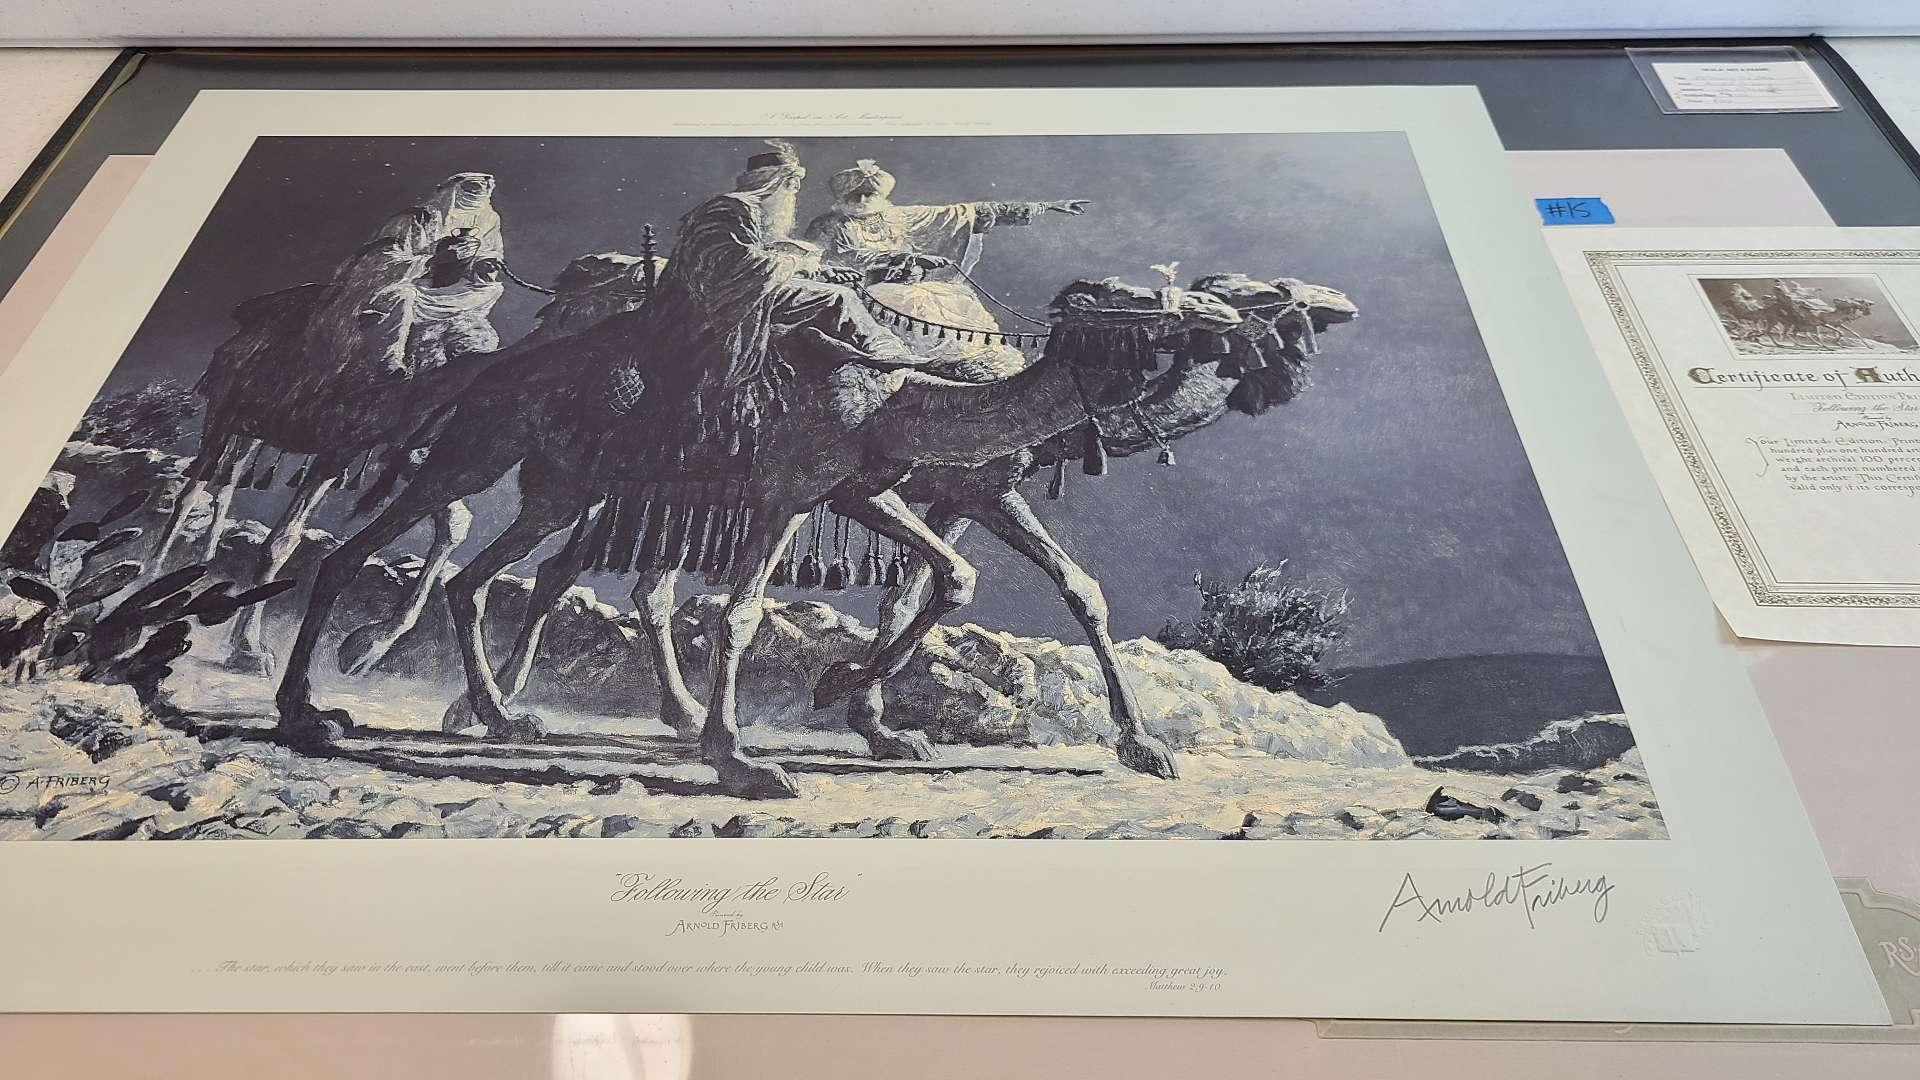 """Lot # 15 Arnold Friberg """"Following the Star"""" Signed & Numbered Lithograph W/ Certificate of Authenticity"""